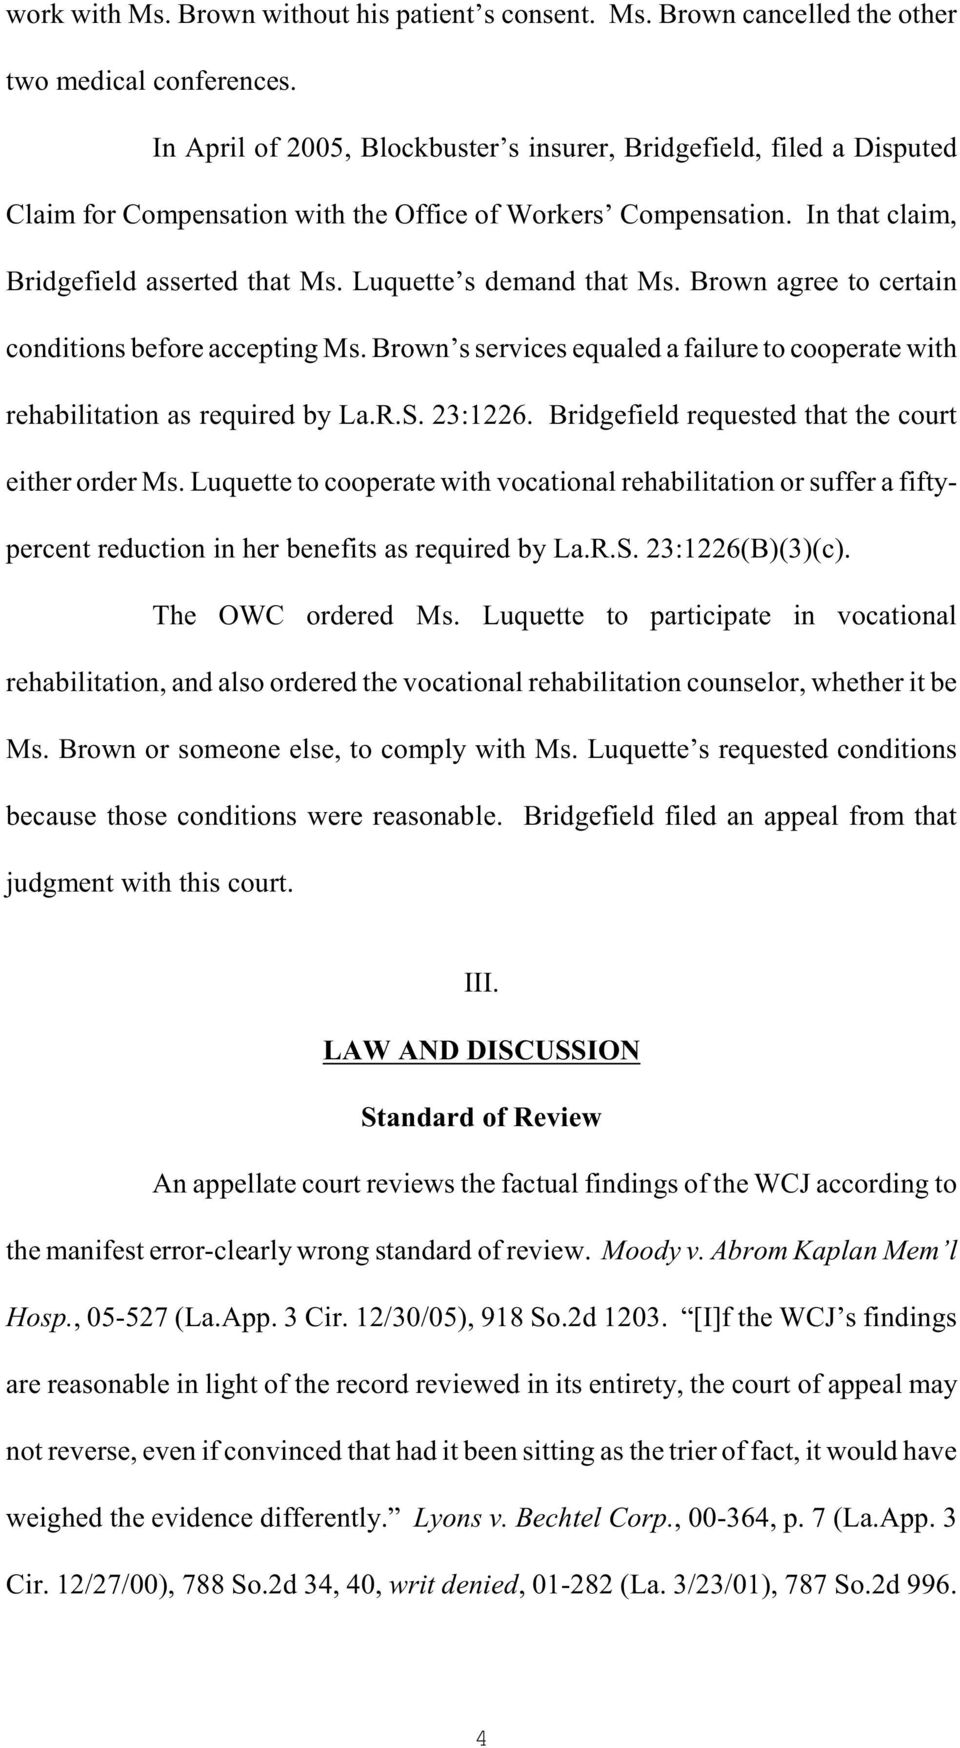 Luquette s demand that Ms. Brown agree to certain conditions before accepting Ms. Brown s services equaled a failure to cooperate with rehabilitation as required by La.R.S. 23:1226.